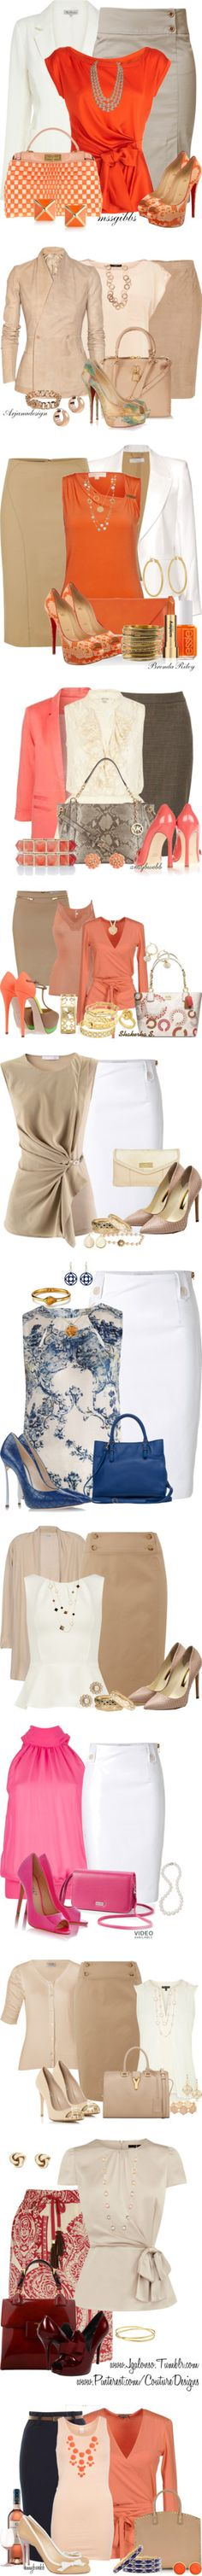 "Outfit ideas for a spring, work appropriate look #spring #fashion #work ""Office In The Spring"" by esha2001 ❤ liked on Discover and share your fashion ideas www.popmiss.com"